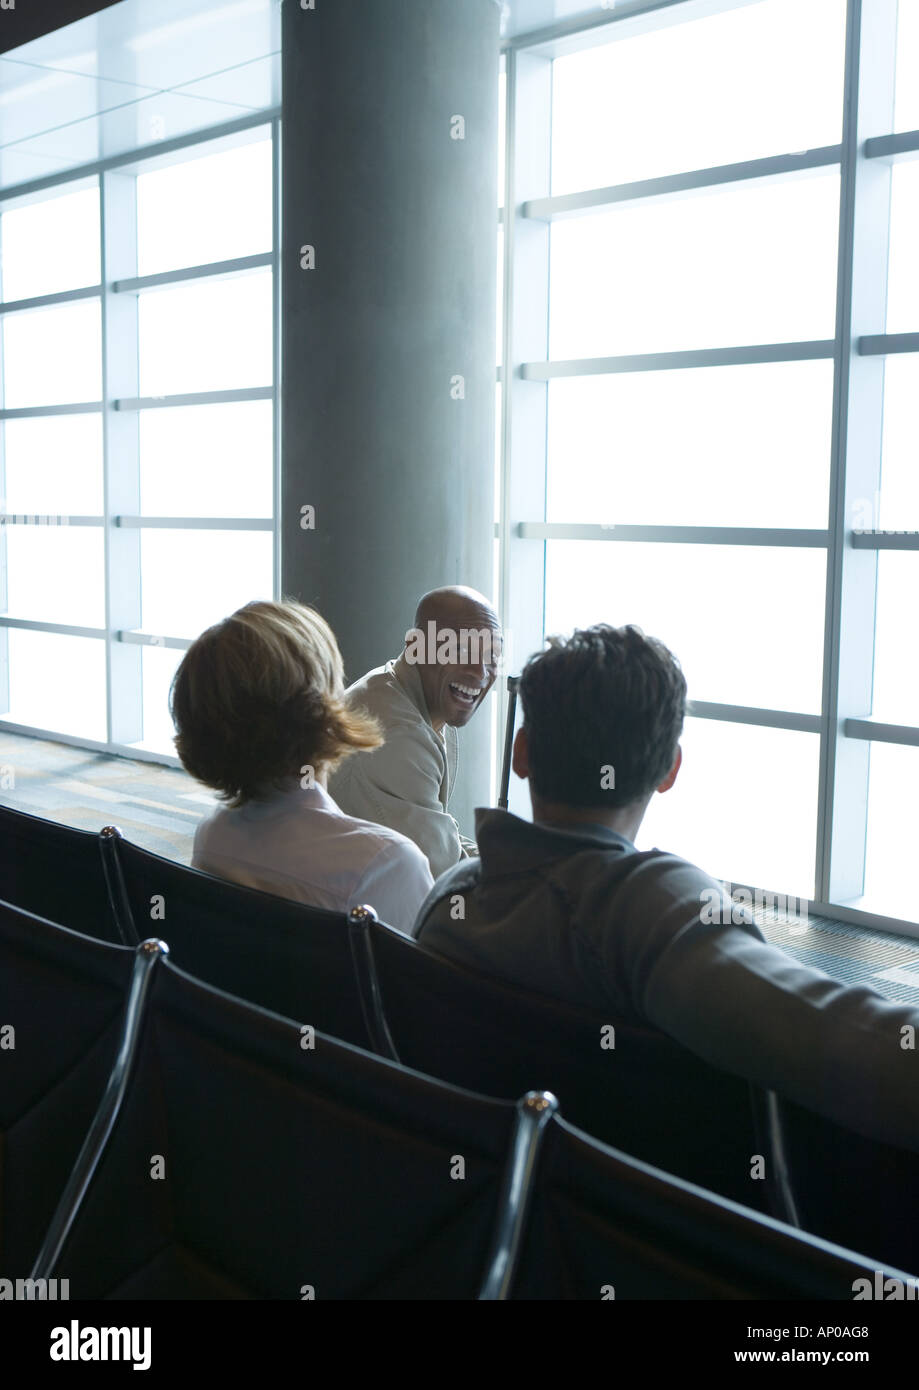 People in airport lounge - Stock Image